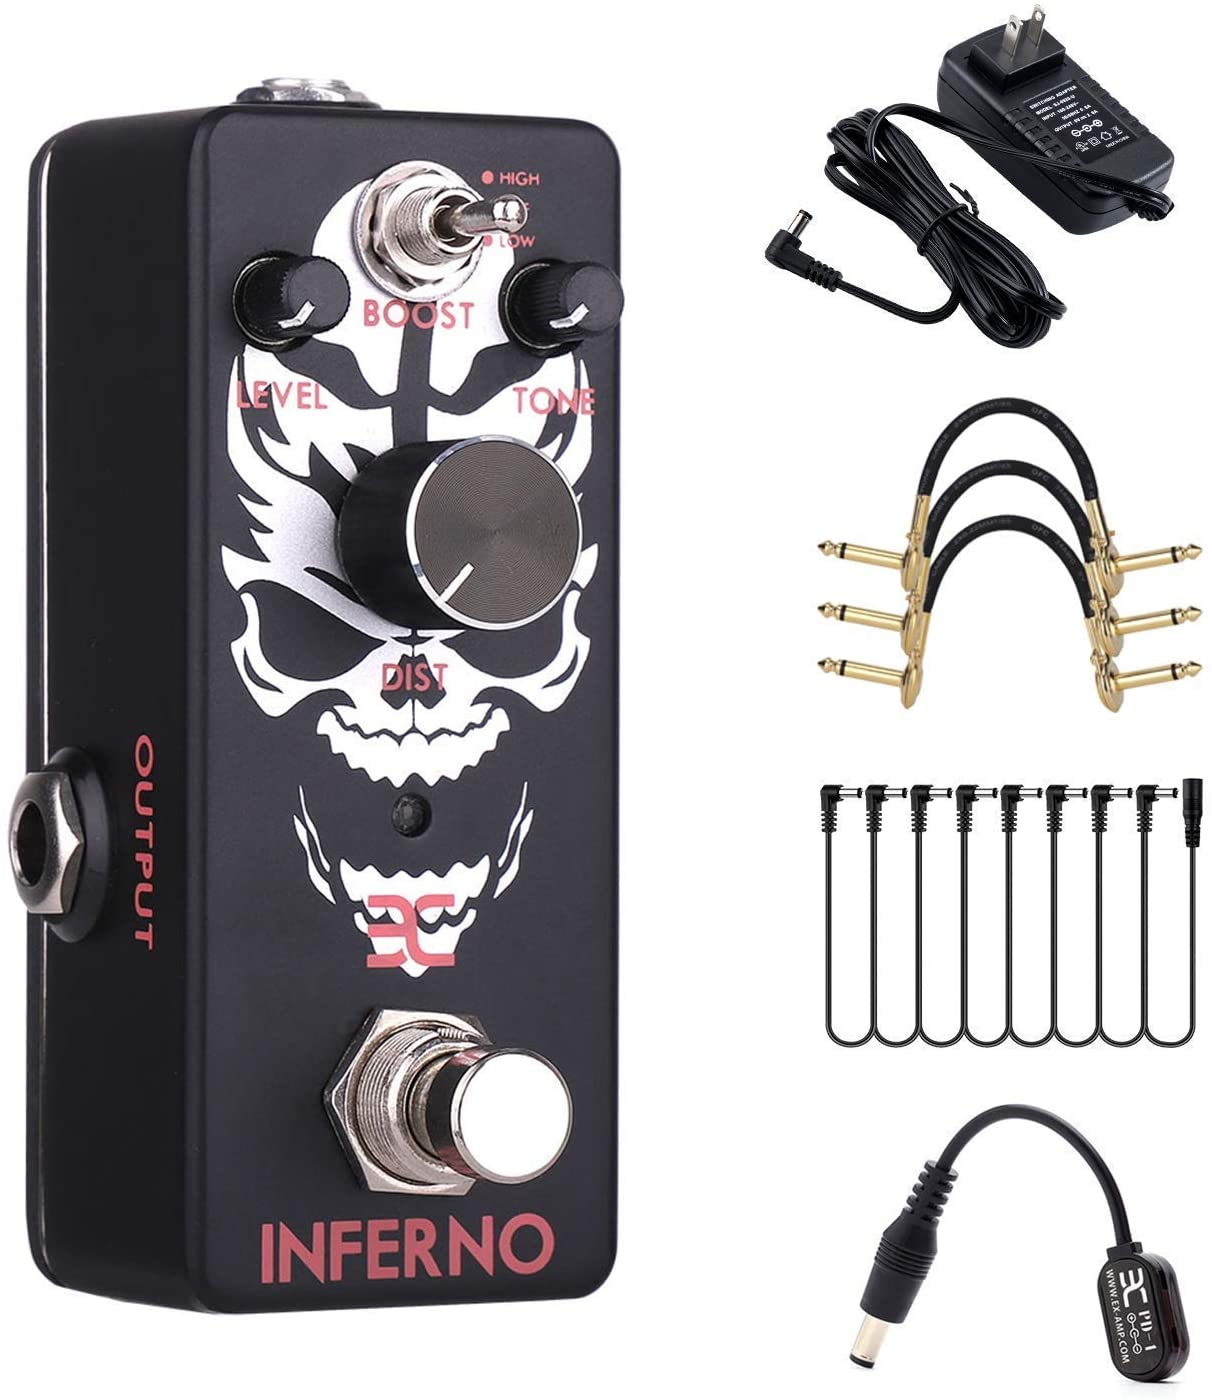 EX Inferno Metal Distortion Pedal and Power Supply and Cables Bundle